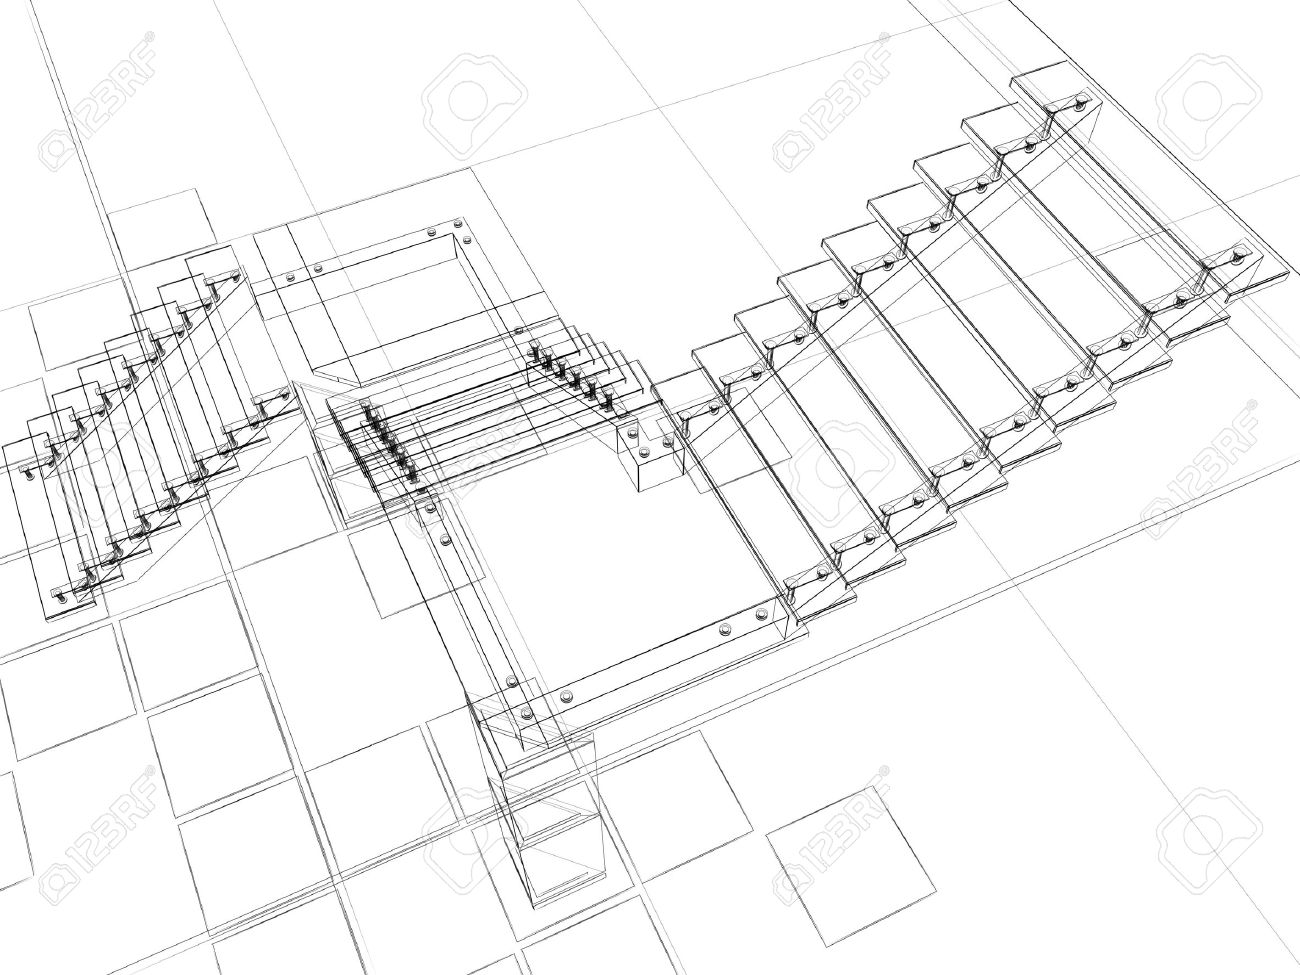 100 stair plan ana white sweet pea garden bunk bed storage stair plan abstract sketch of stairs stock photo picture and royalty free